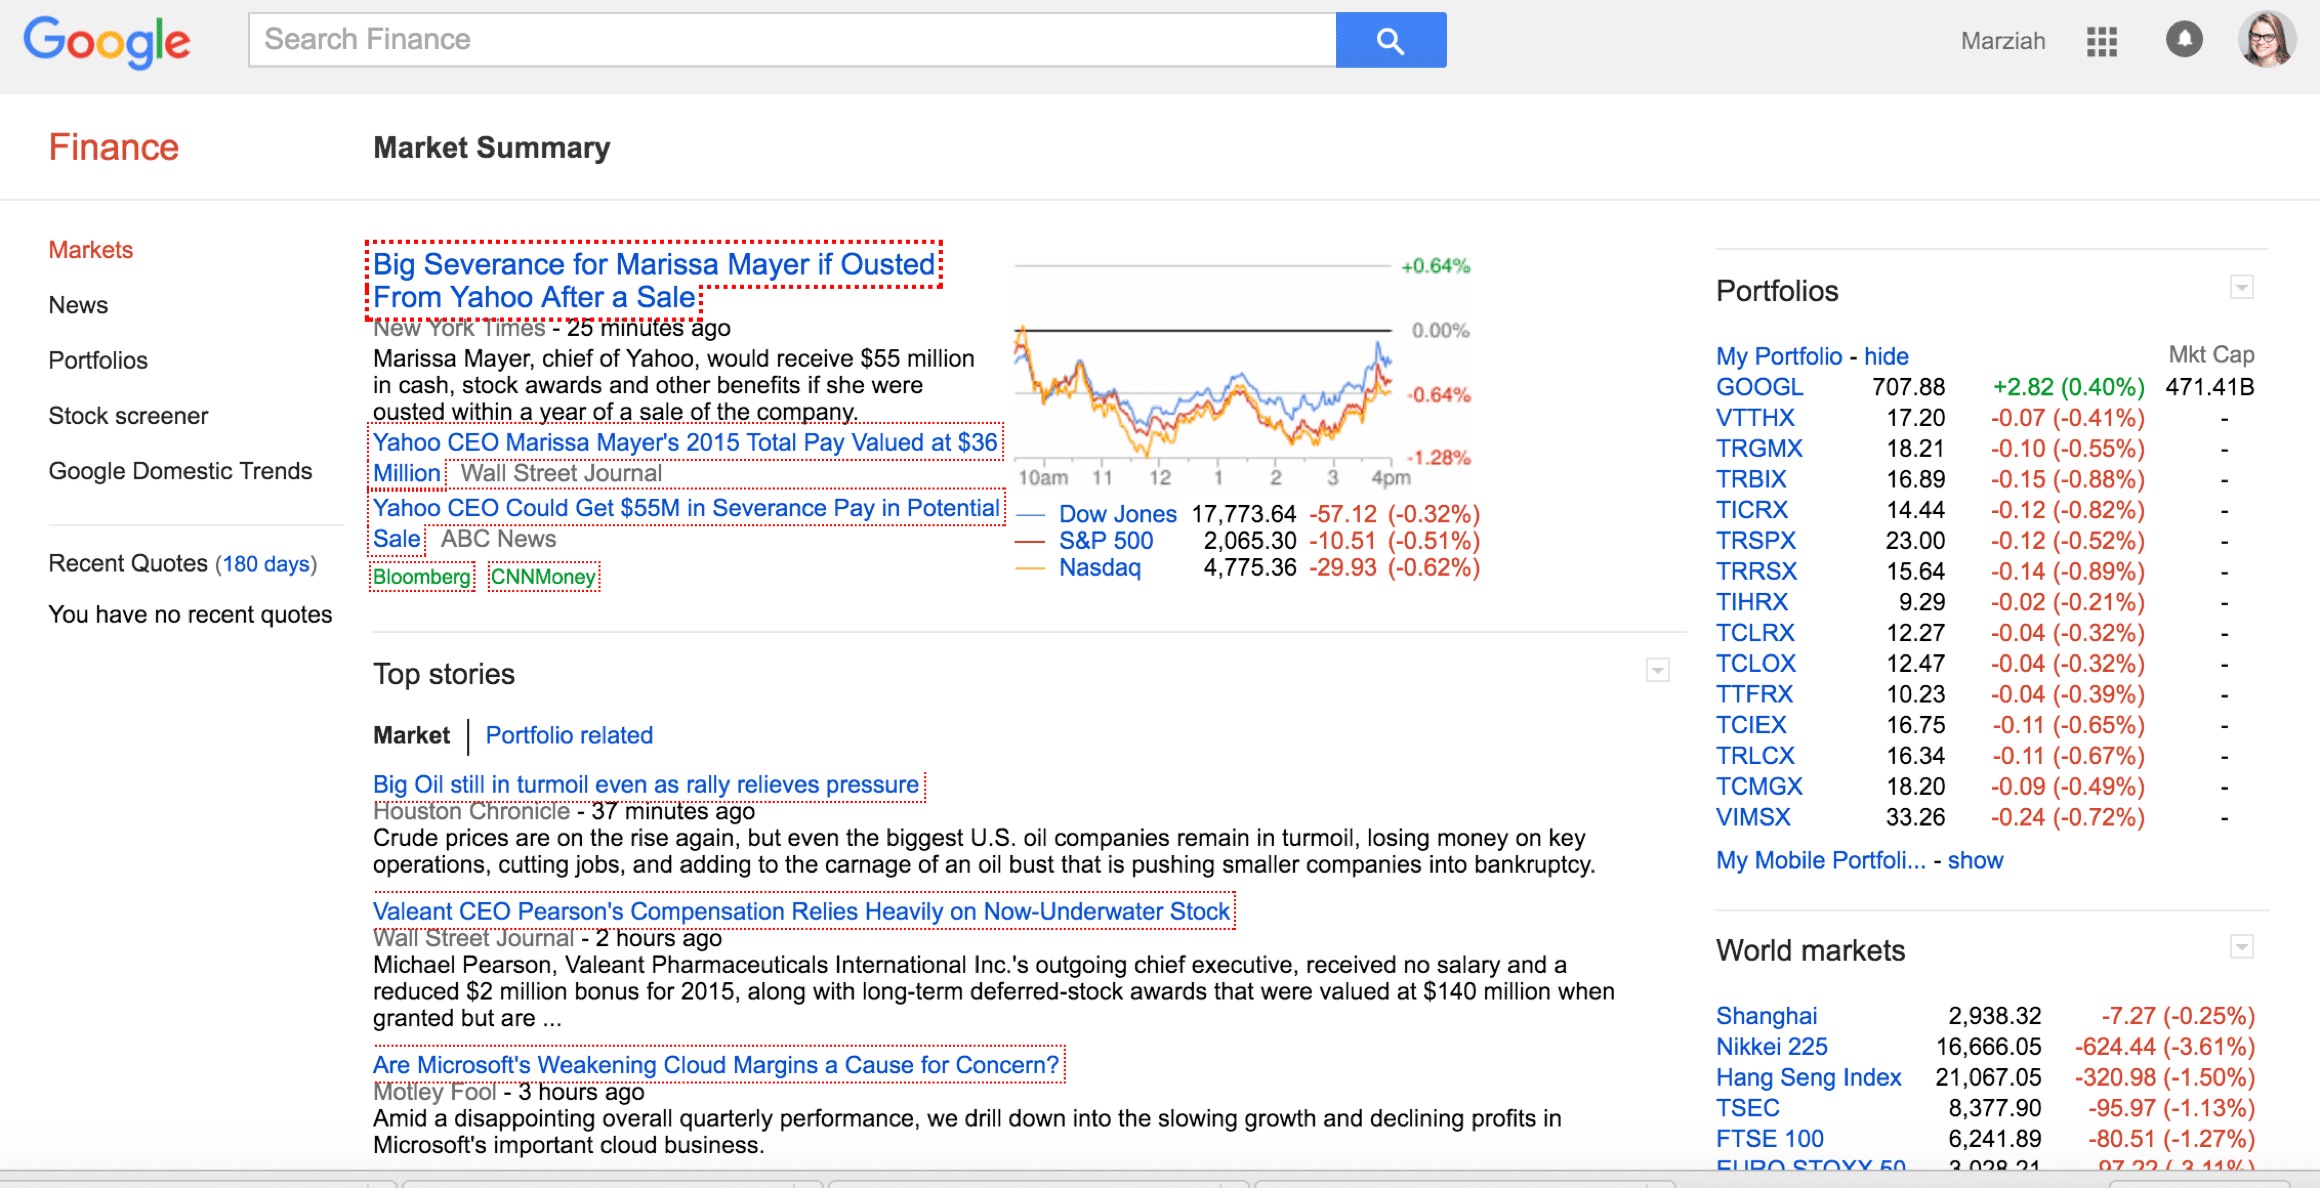 Google Finance Search Example